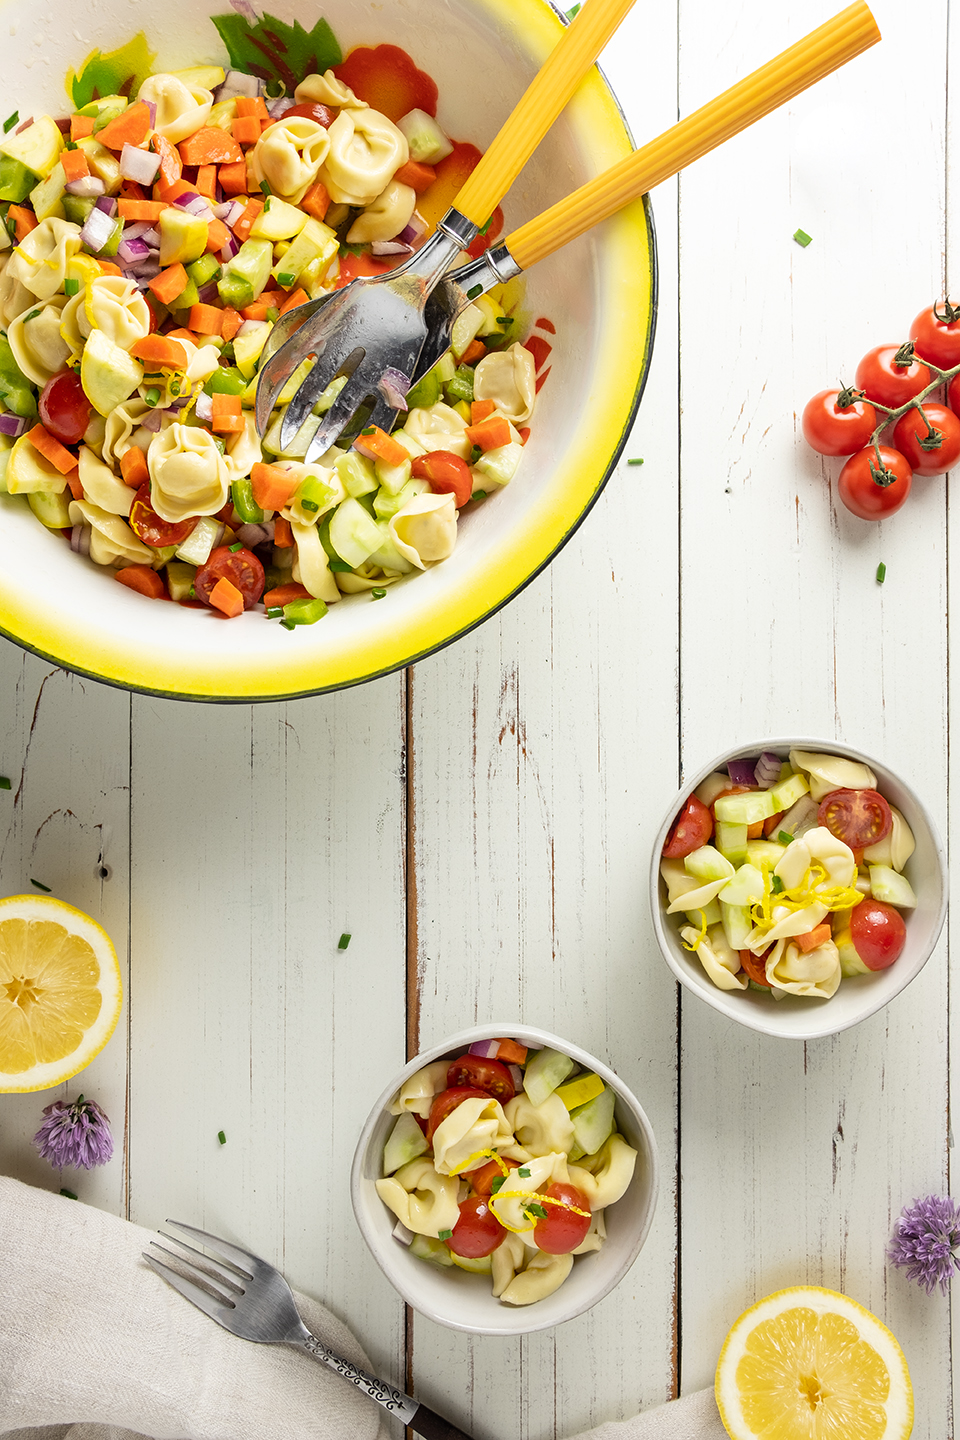 retouched serving bowl of tortellini vegetable salad on white wooden surface